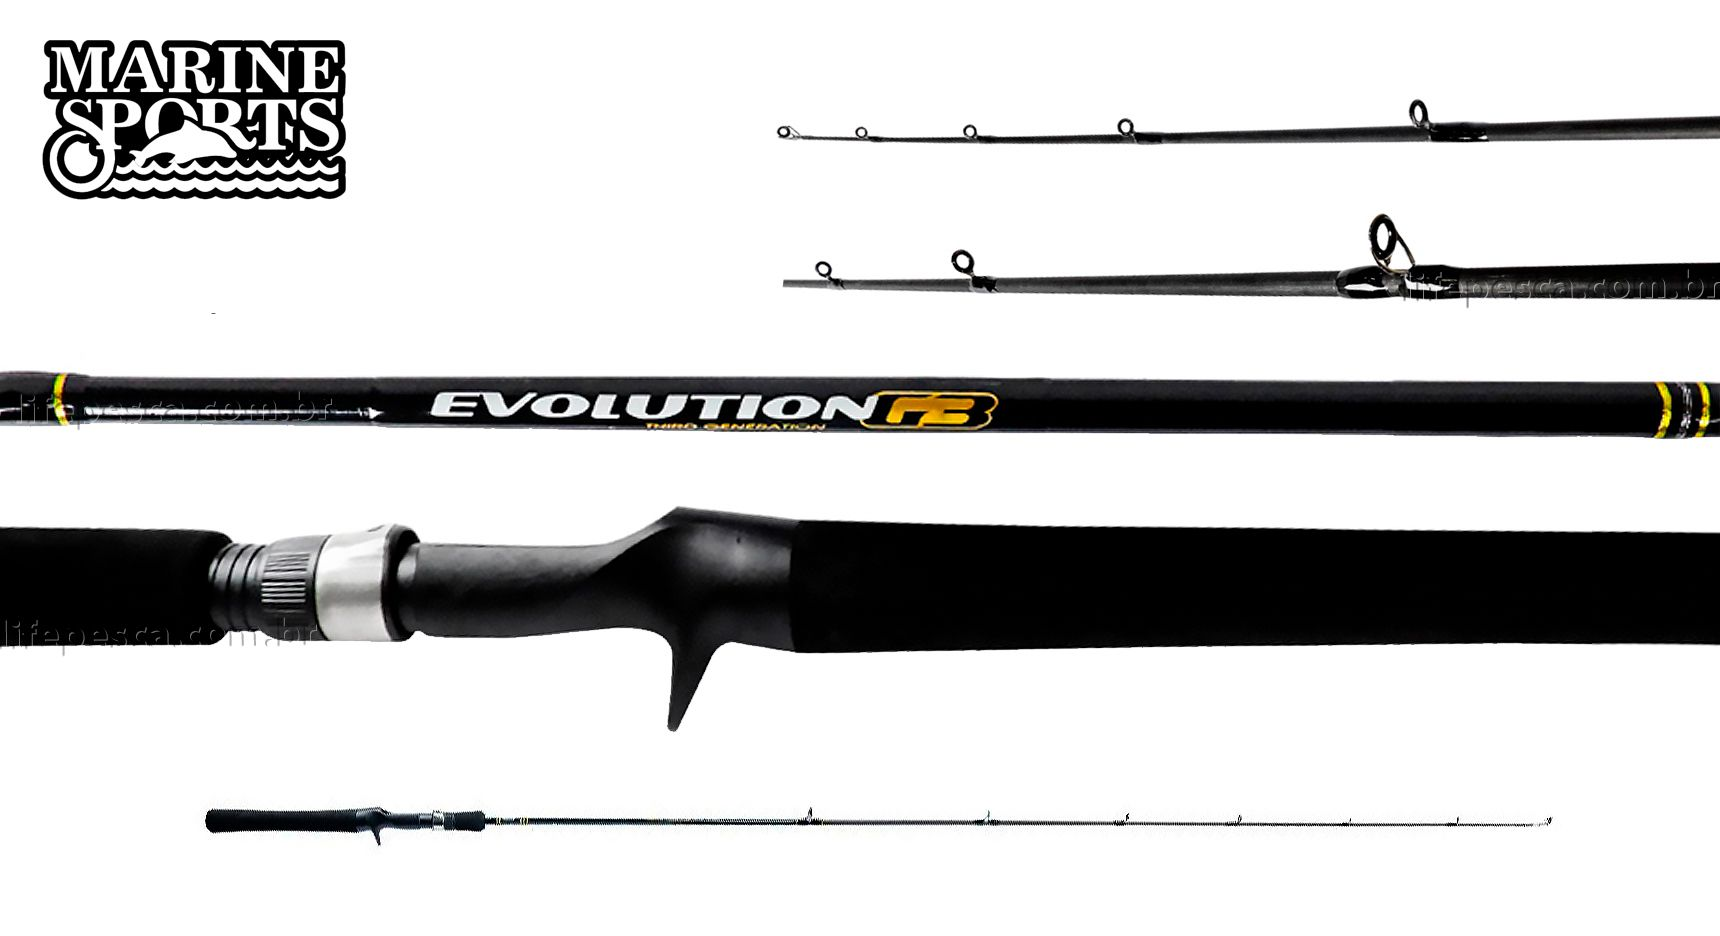 Vara para Carretilha Marine sports Evolution G3 6'0